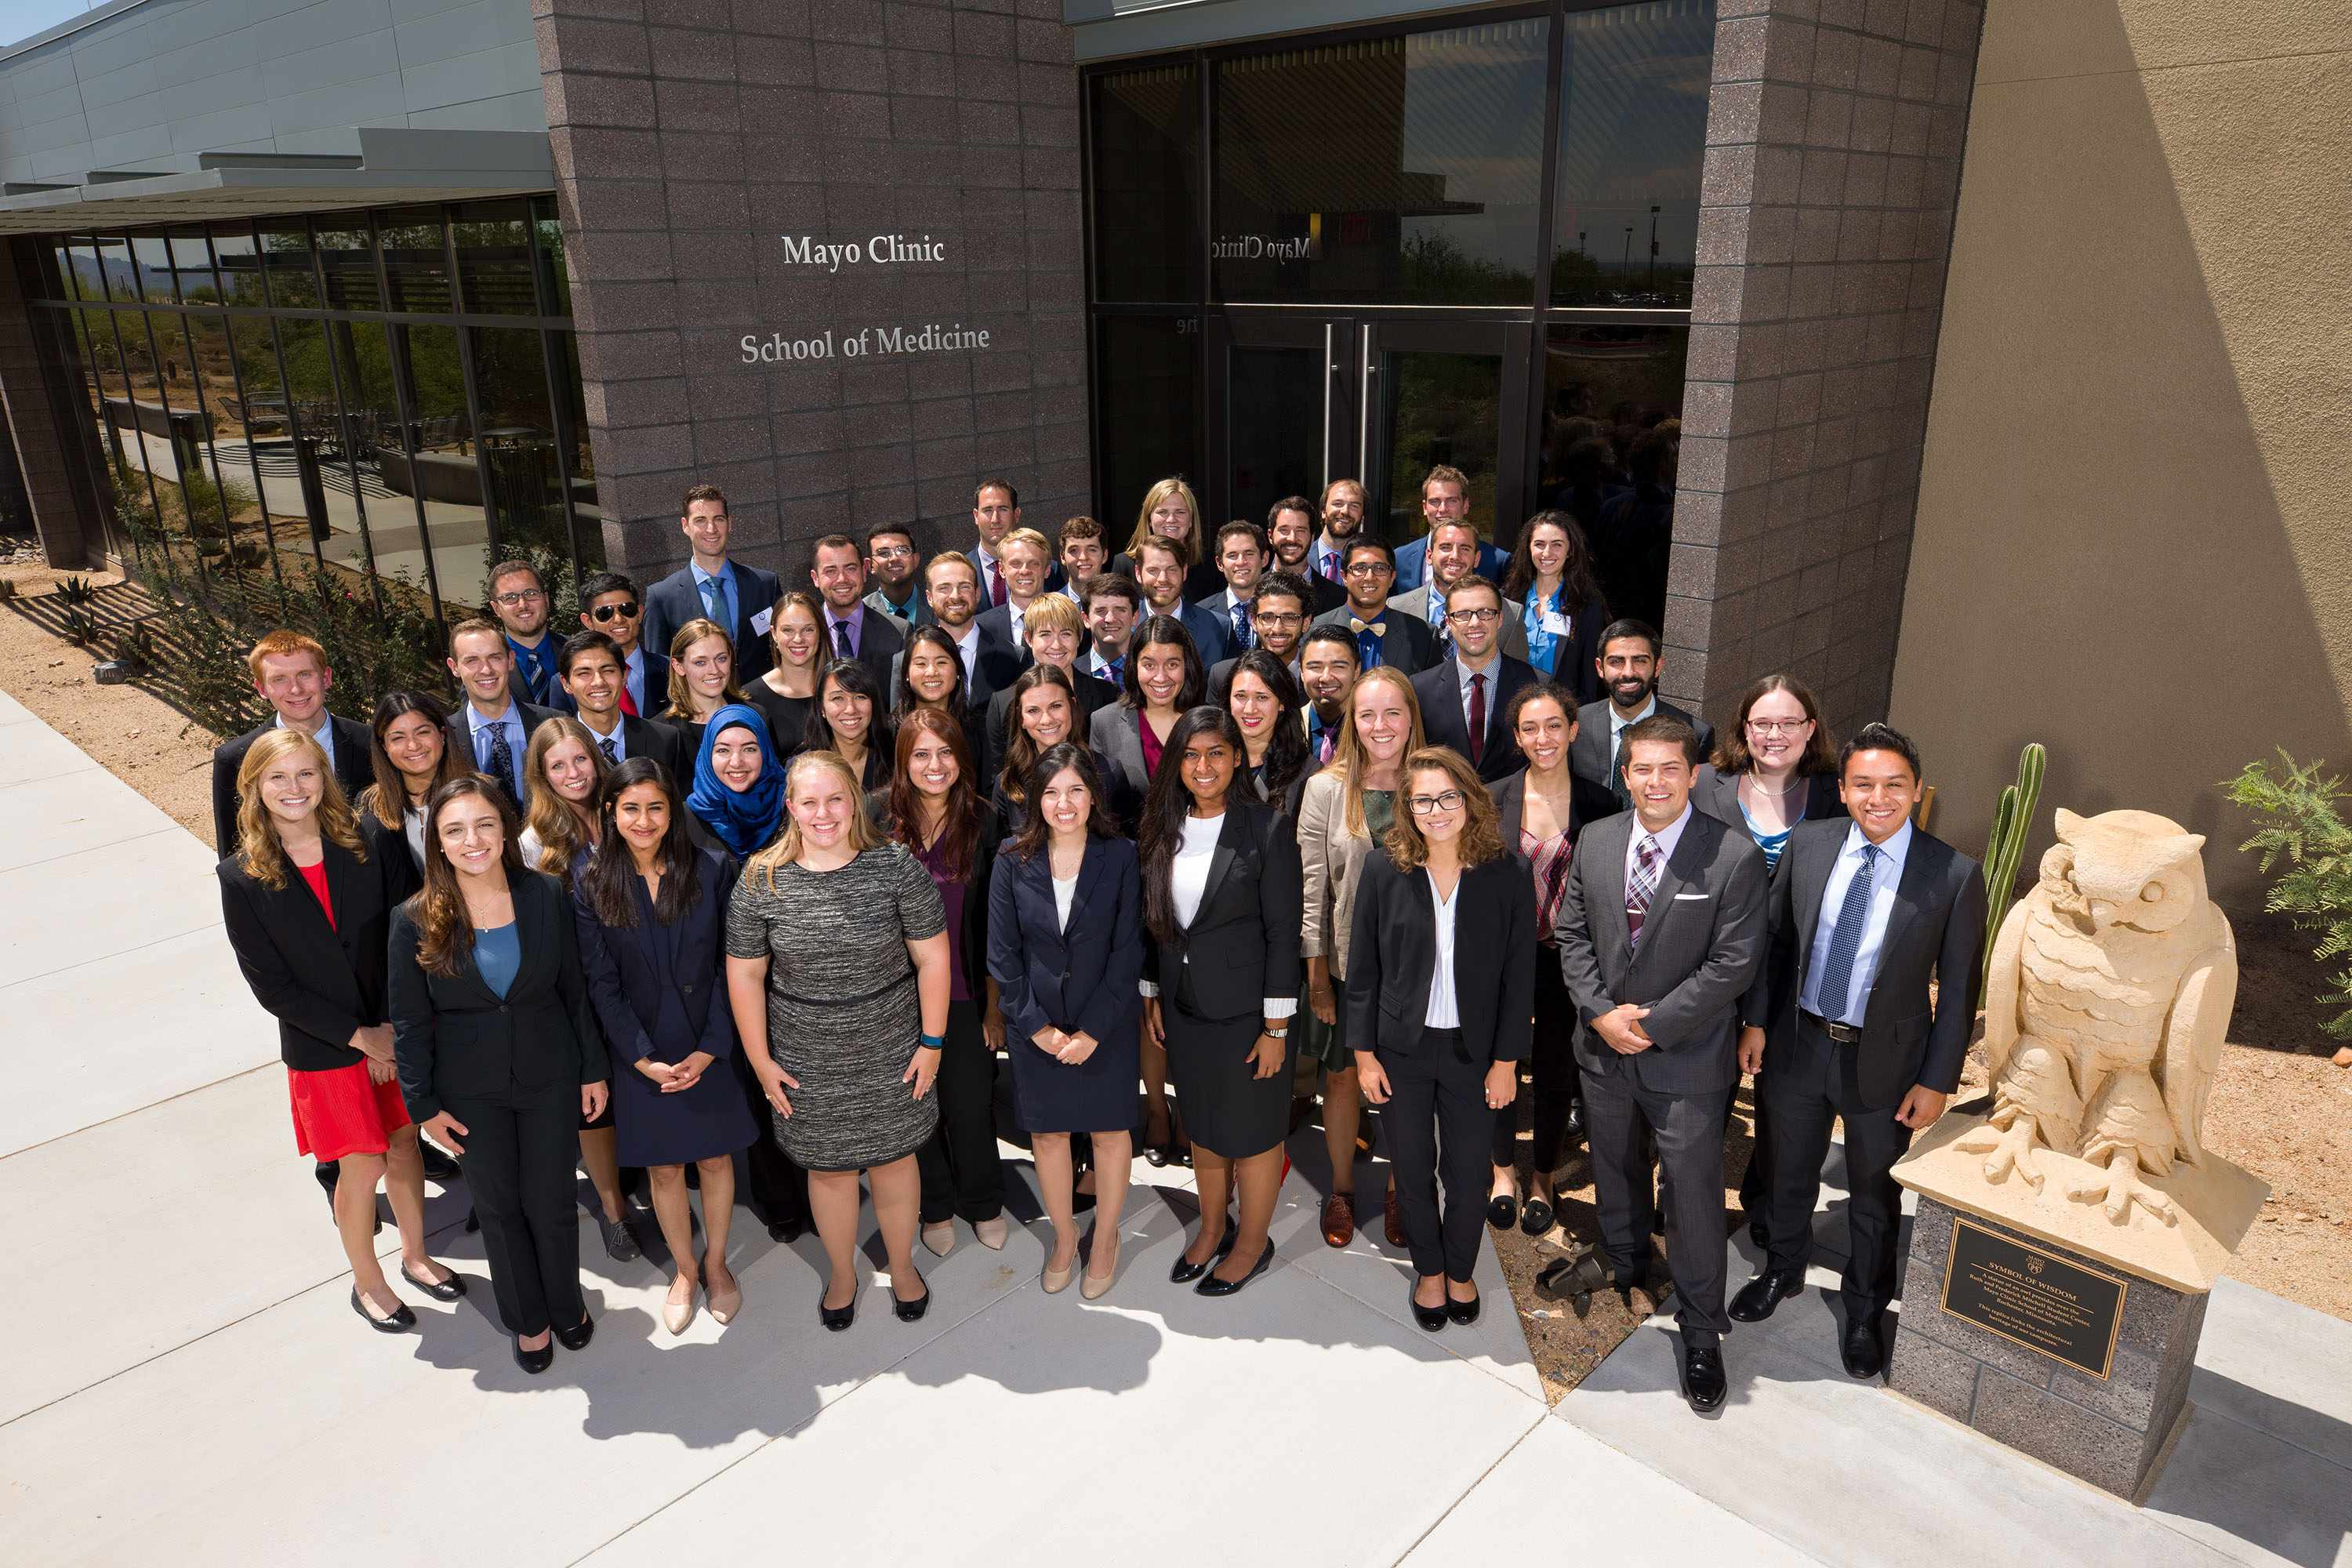 Mayo Clinic School of Medicine gives medical education a new